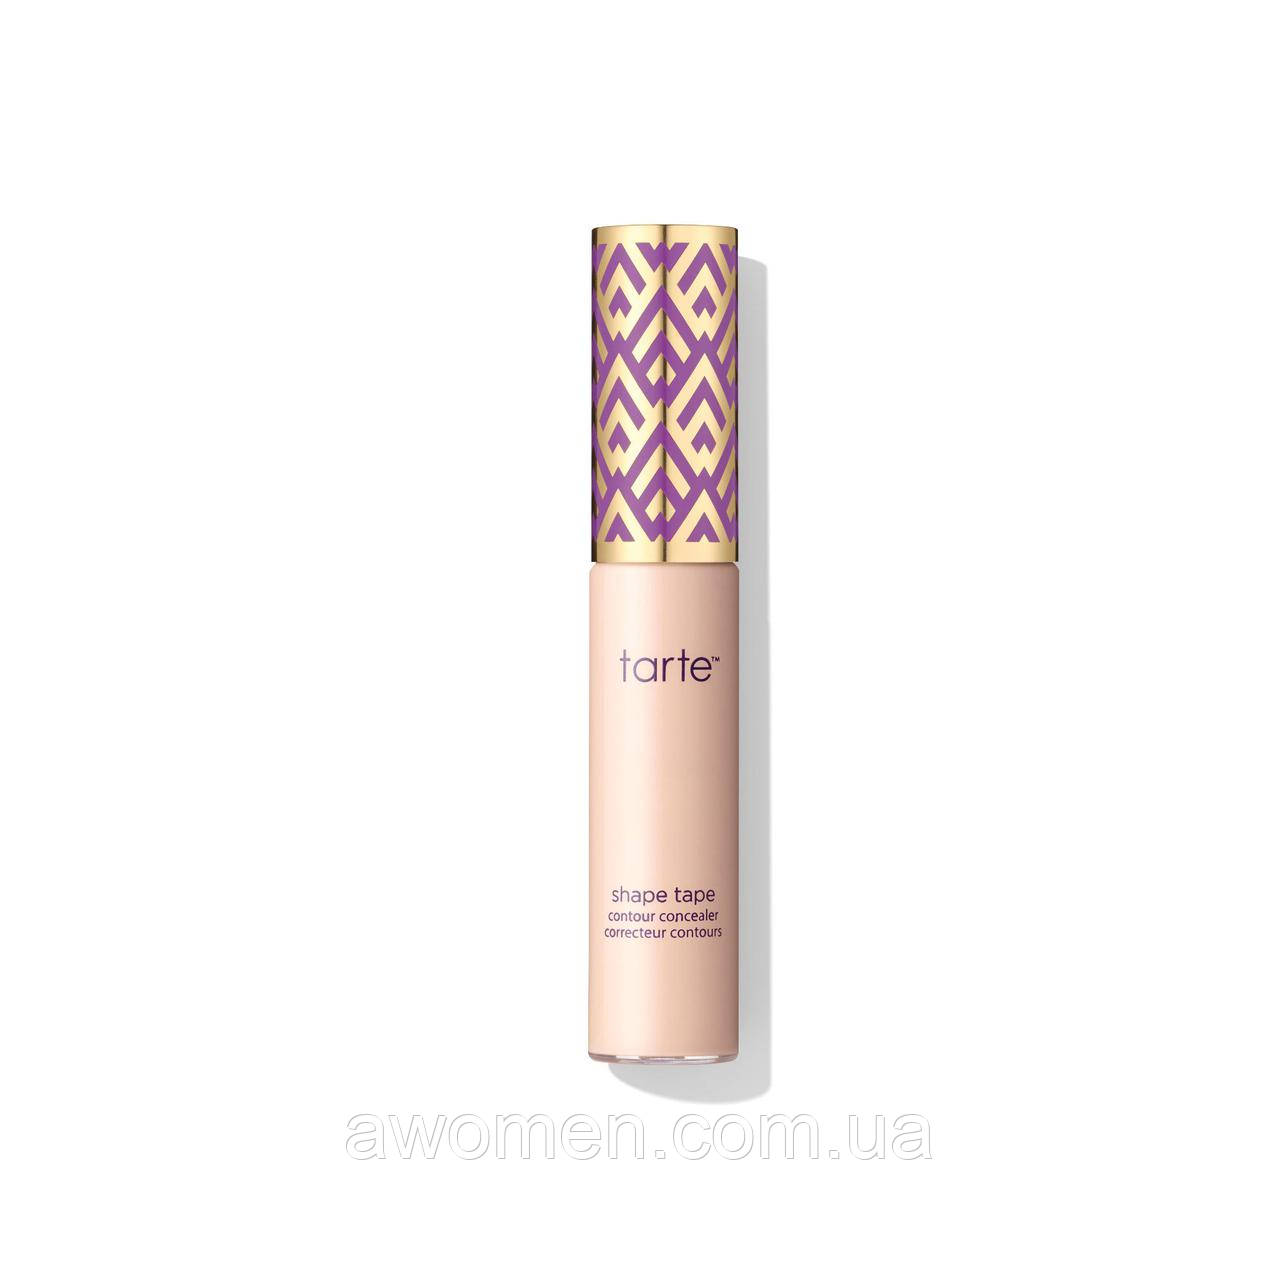 Жидкий консилер Tarte shape tape contour concealer (light)